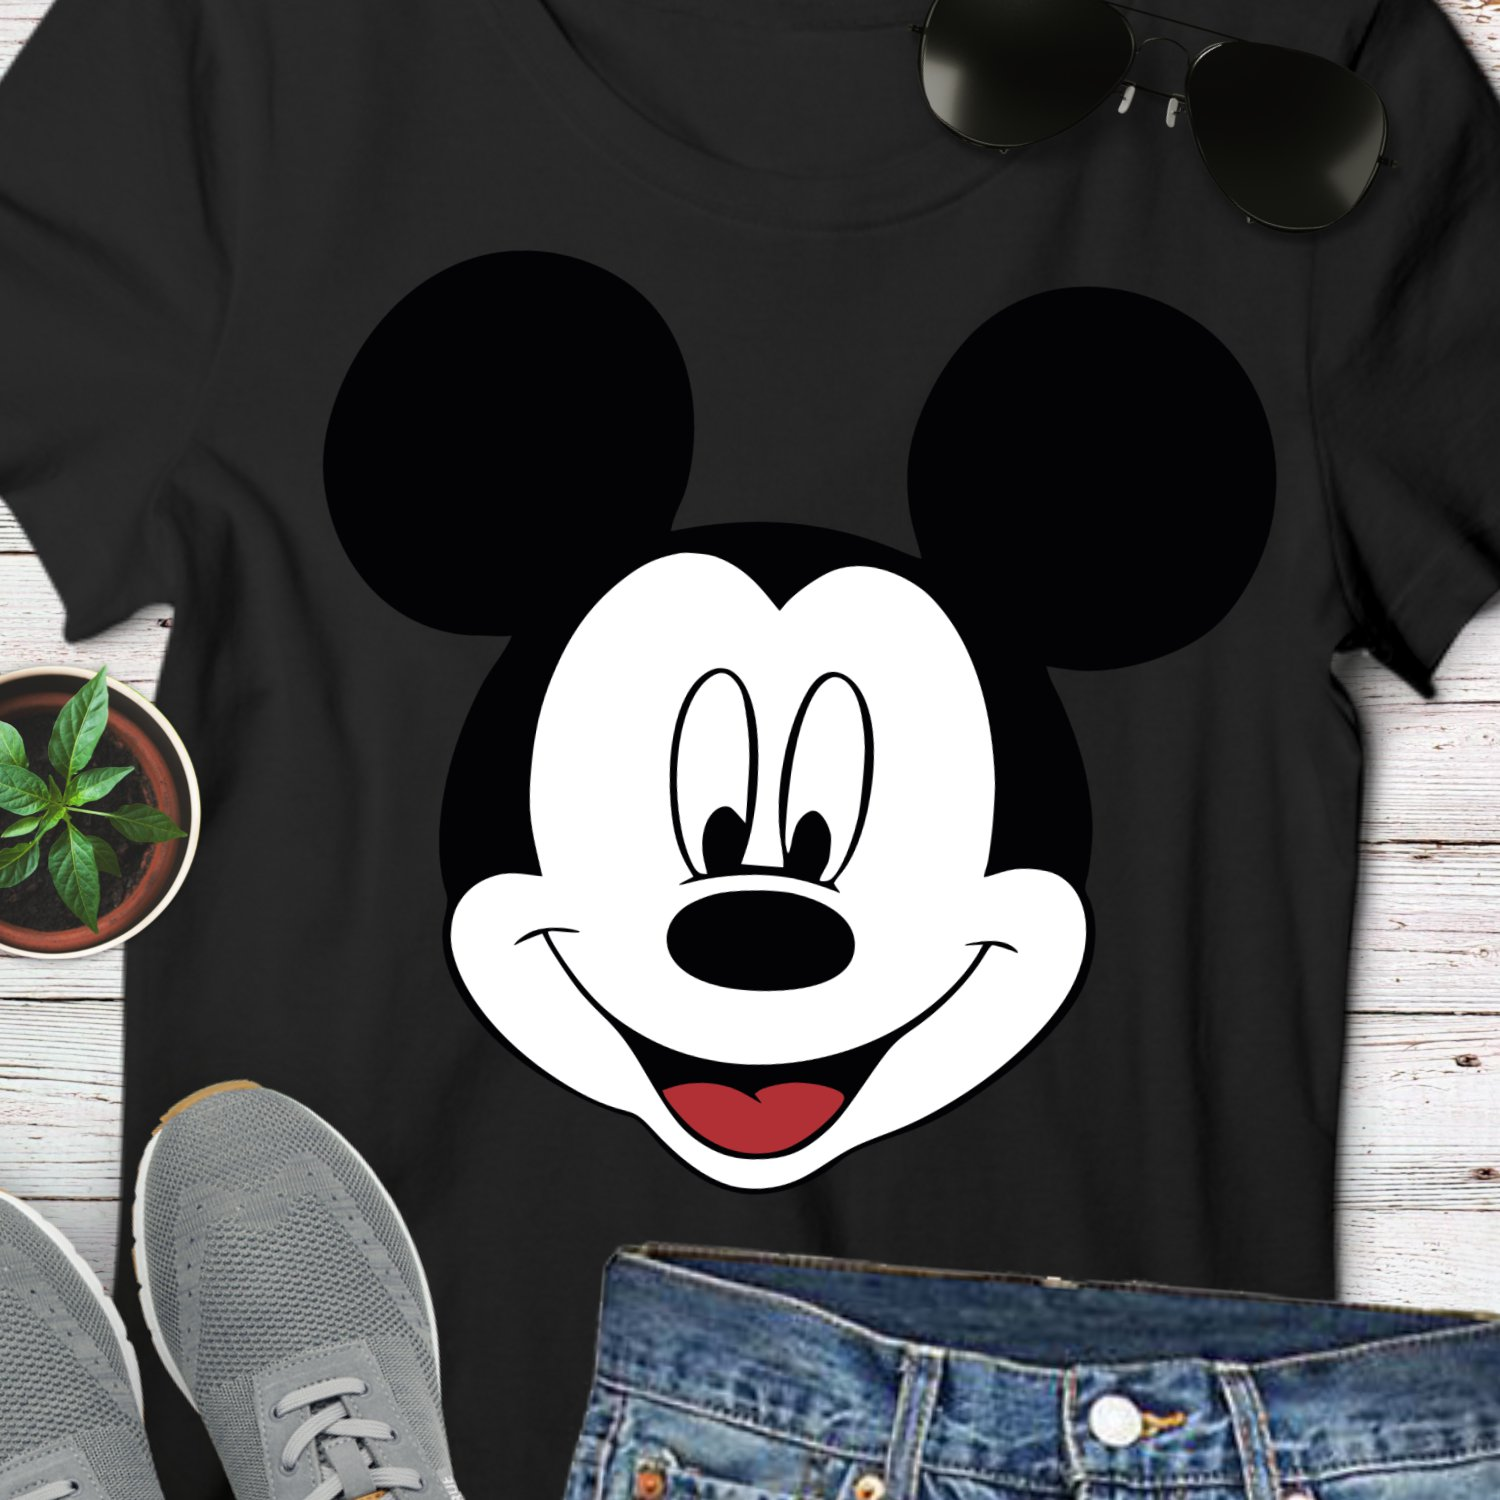 Mickey Tee Shirt Graphic Design Digital Instant Download Sublimation Heat Transfer T SVG PNG D1